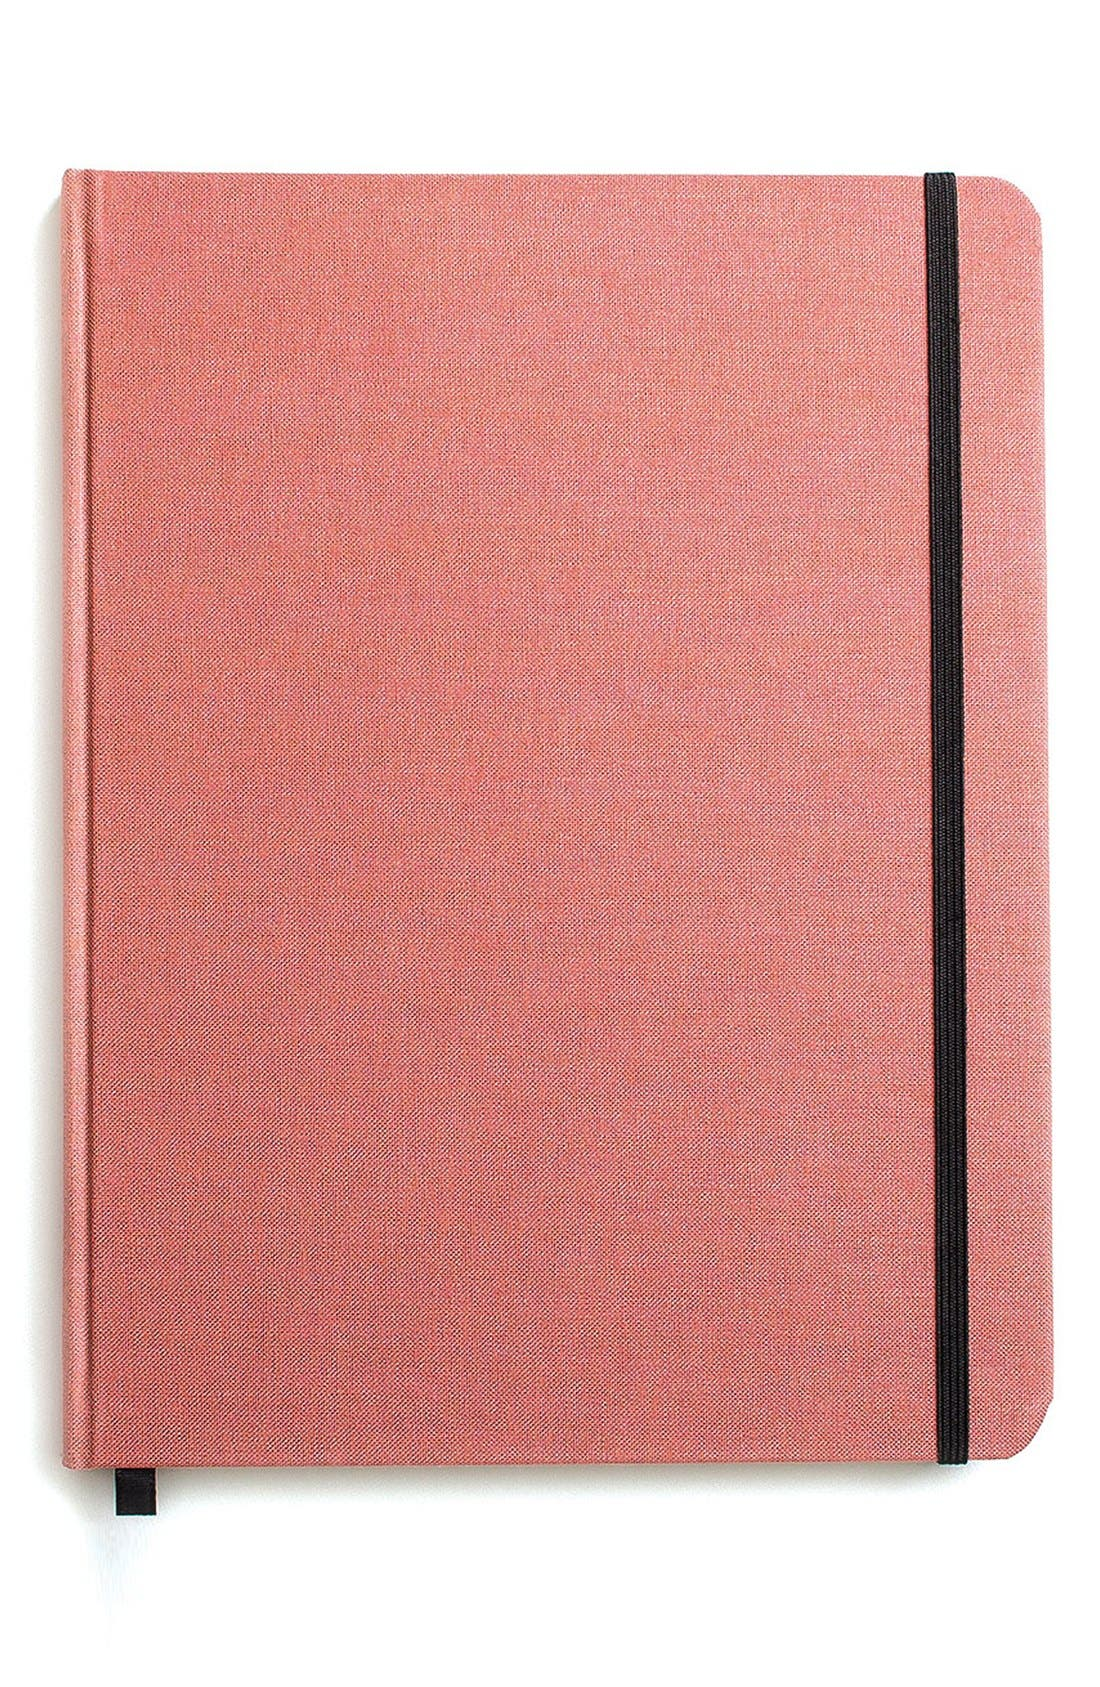 Alternate Image 1 Selected - Shinola Hardcover Linen Journal